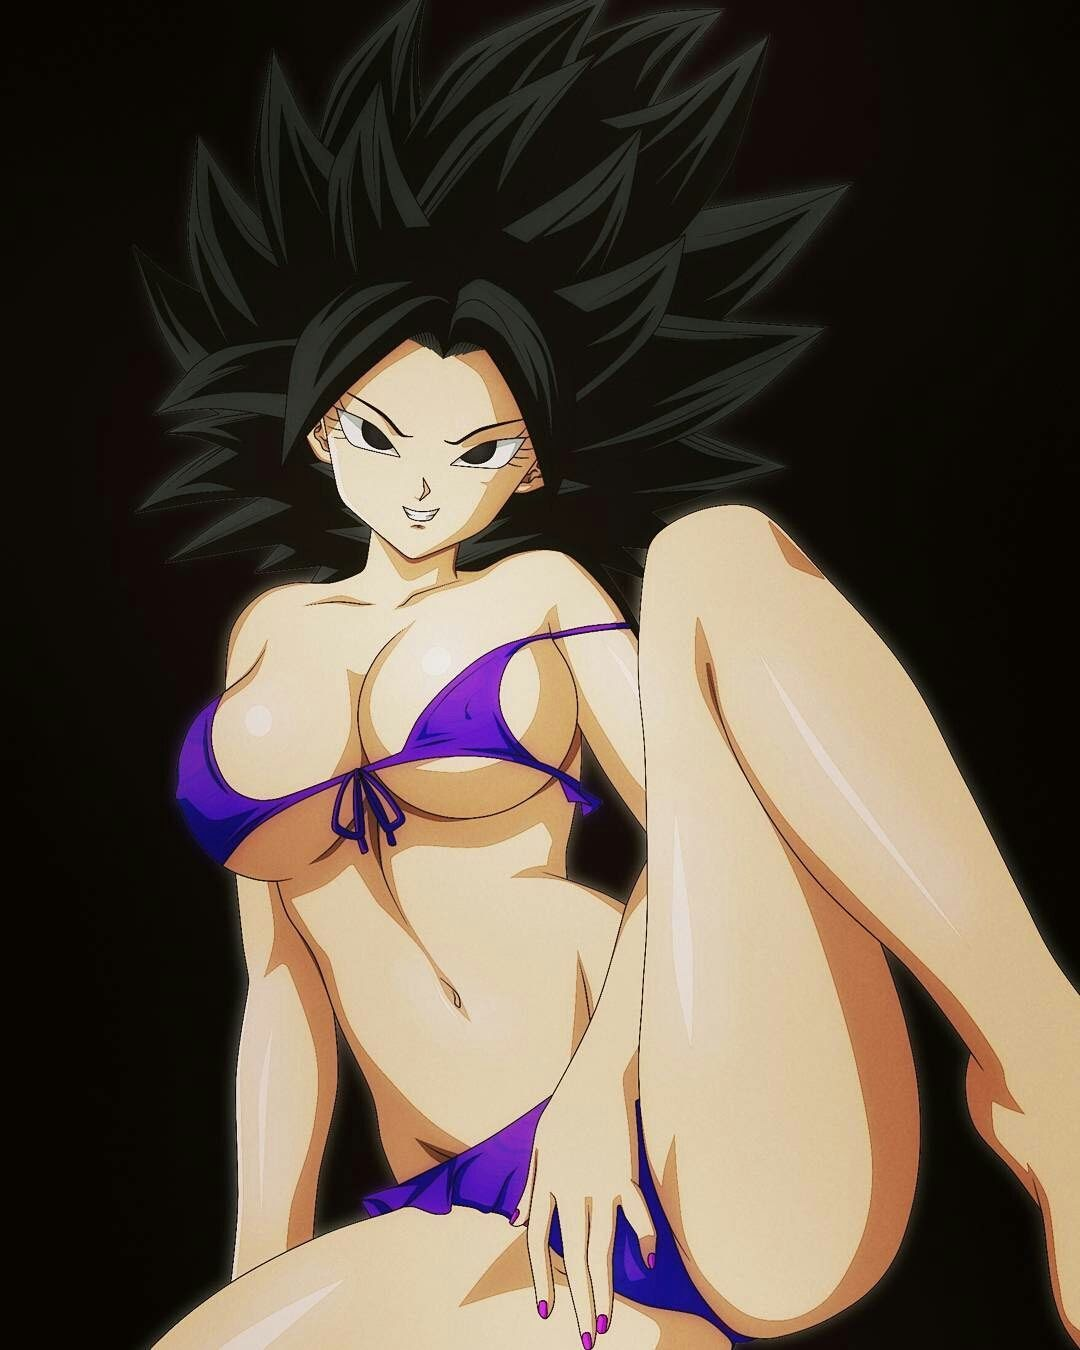 caulifla wallpaper hd